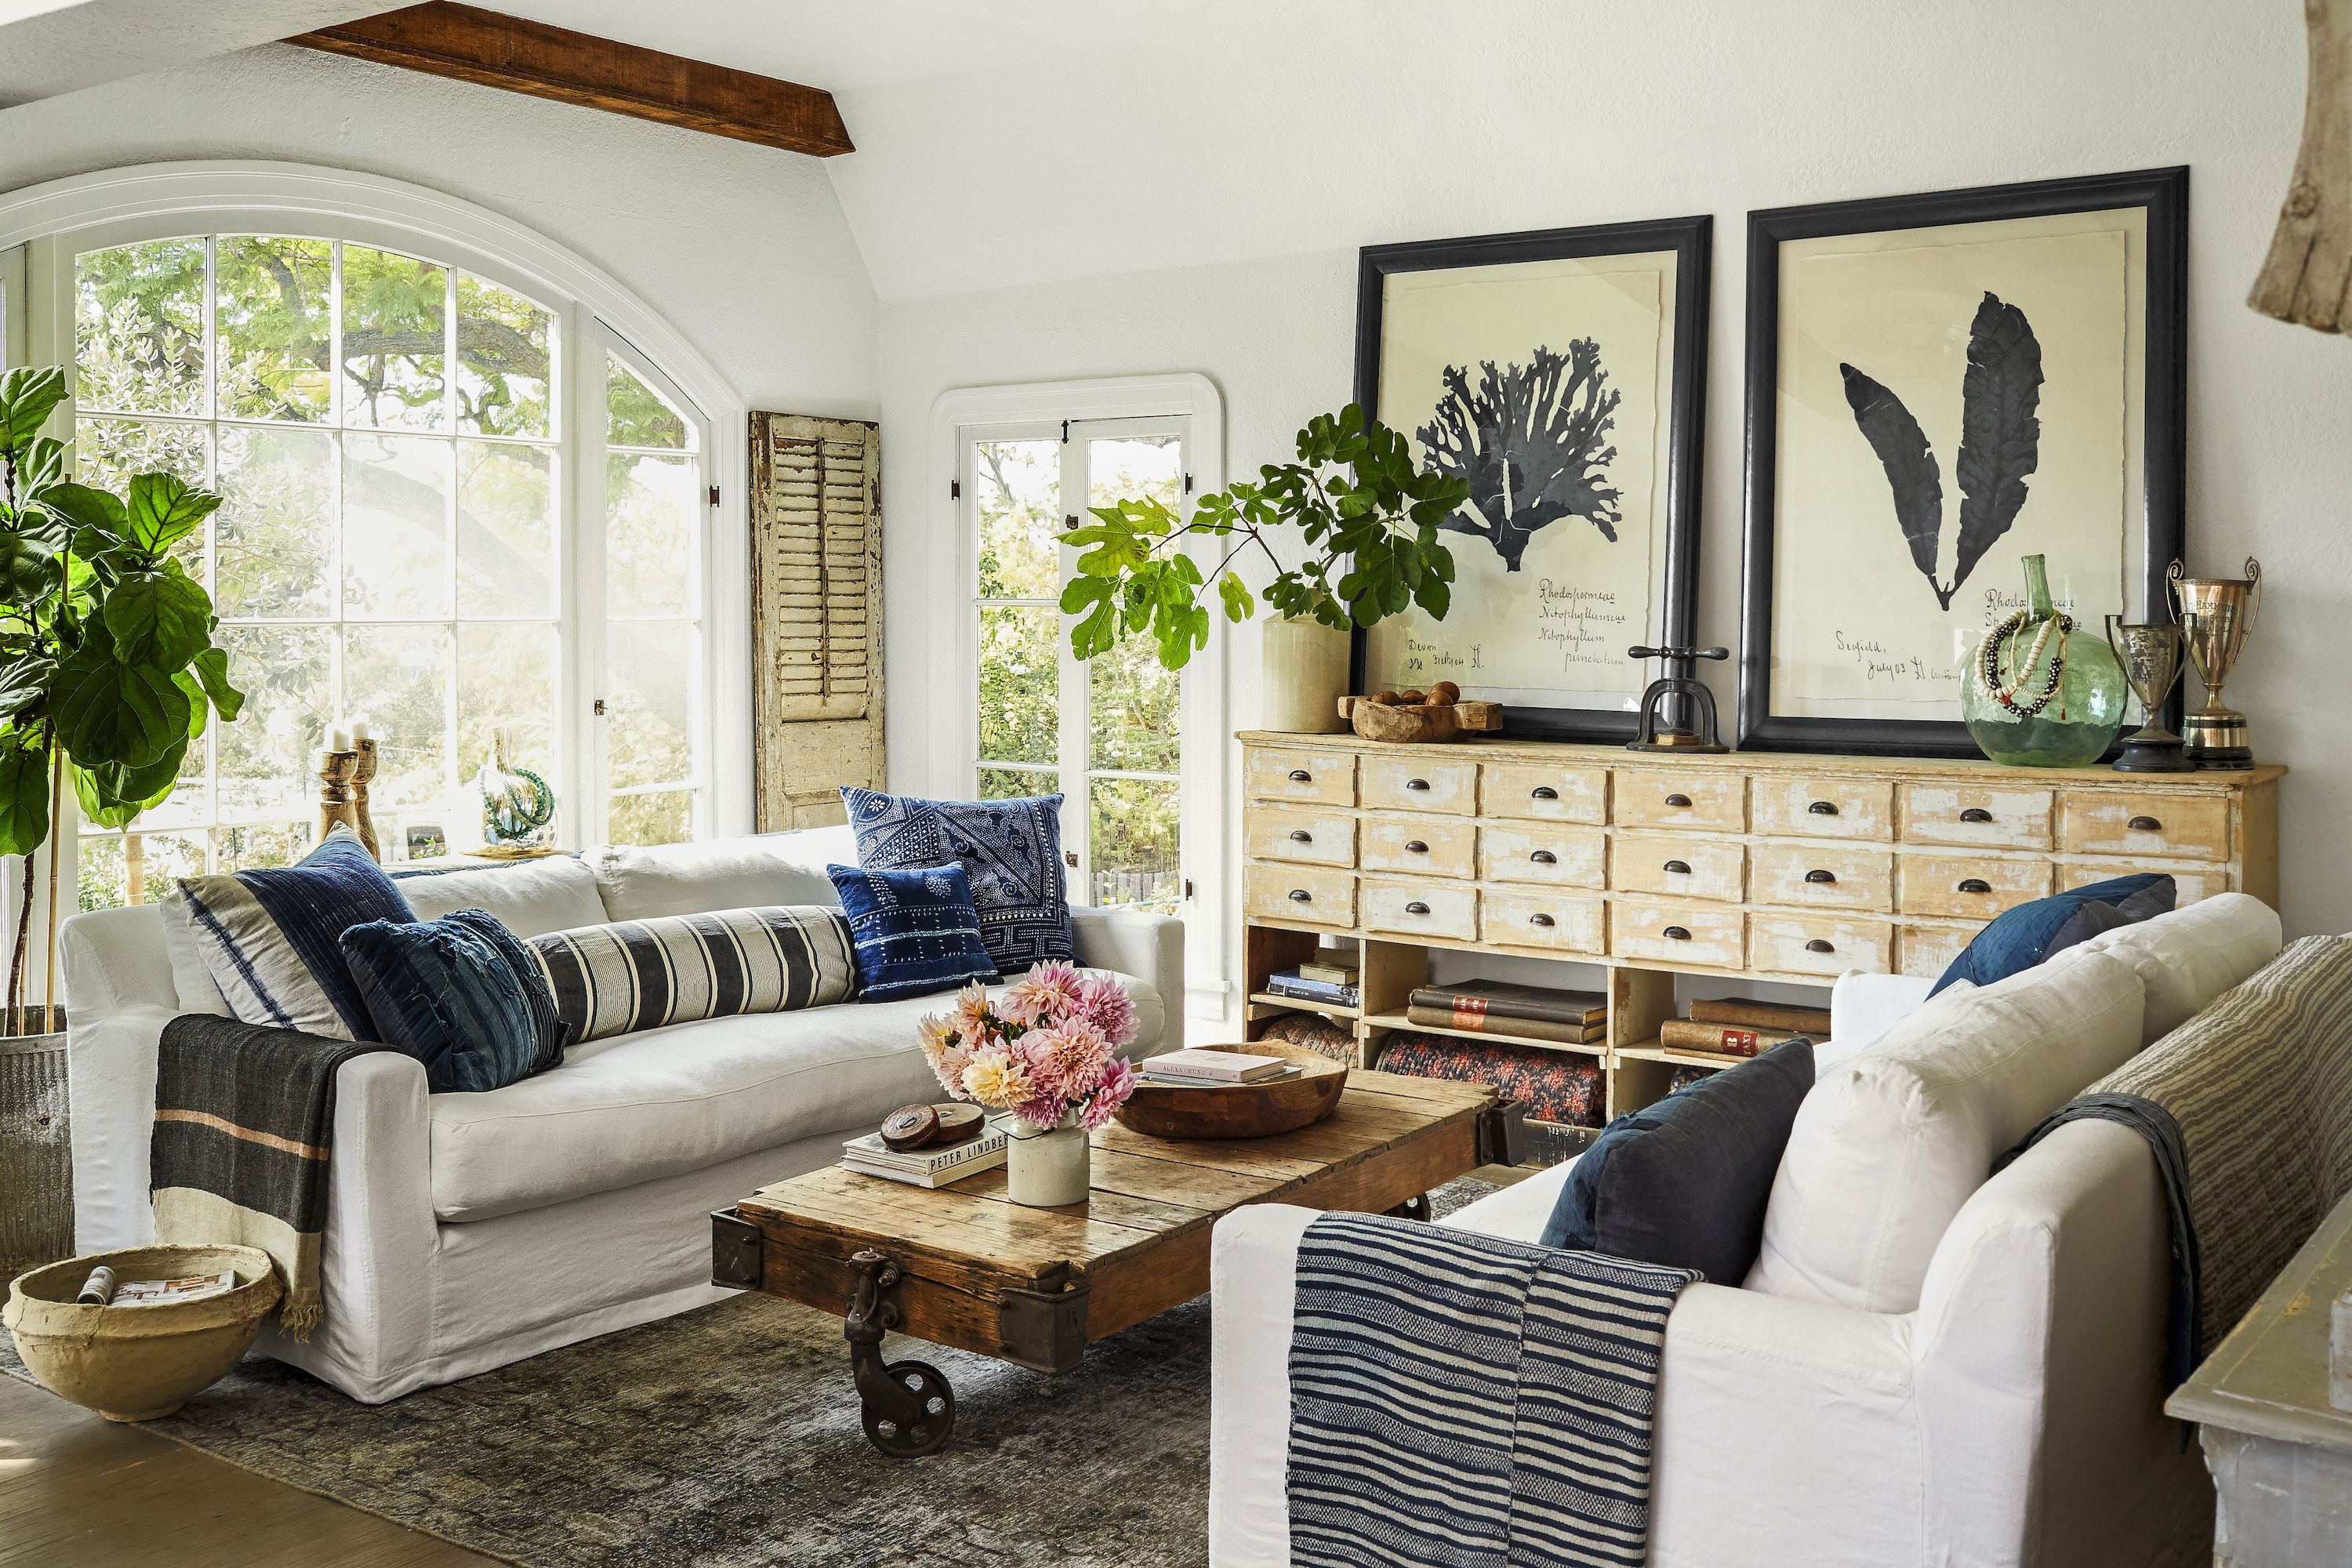 image & 10 Design Secrets for a Calm and Happy Home - How to Create a ...